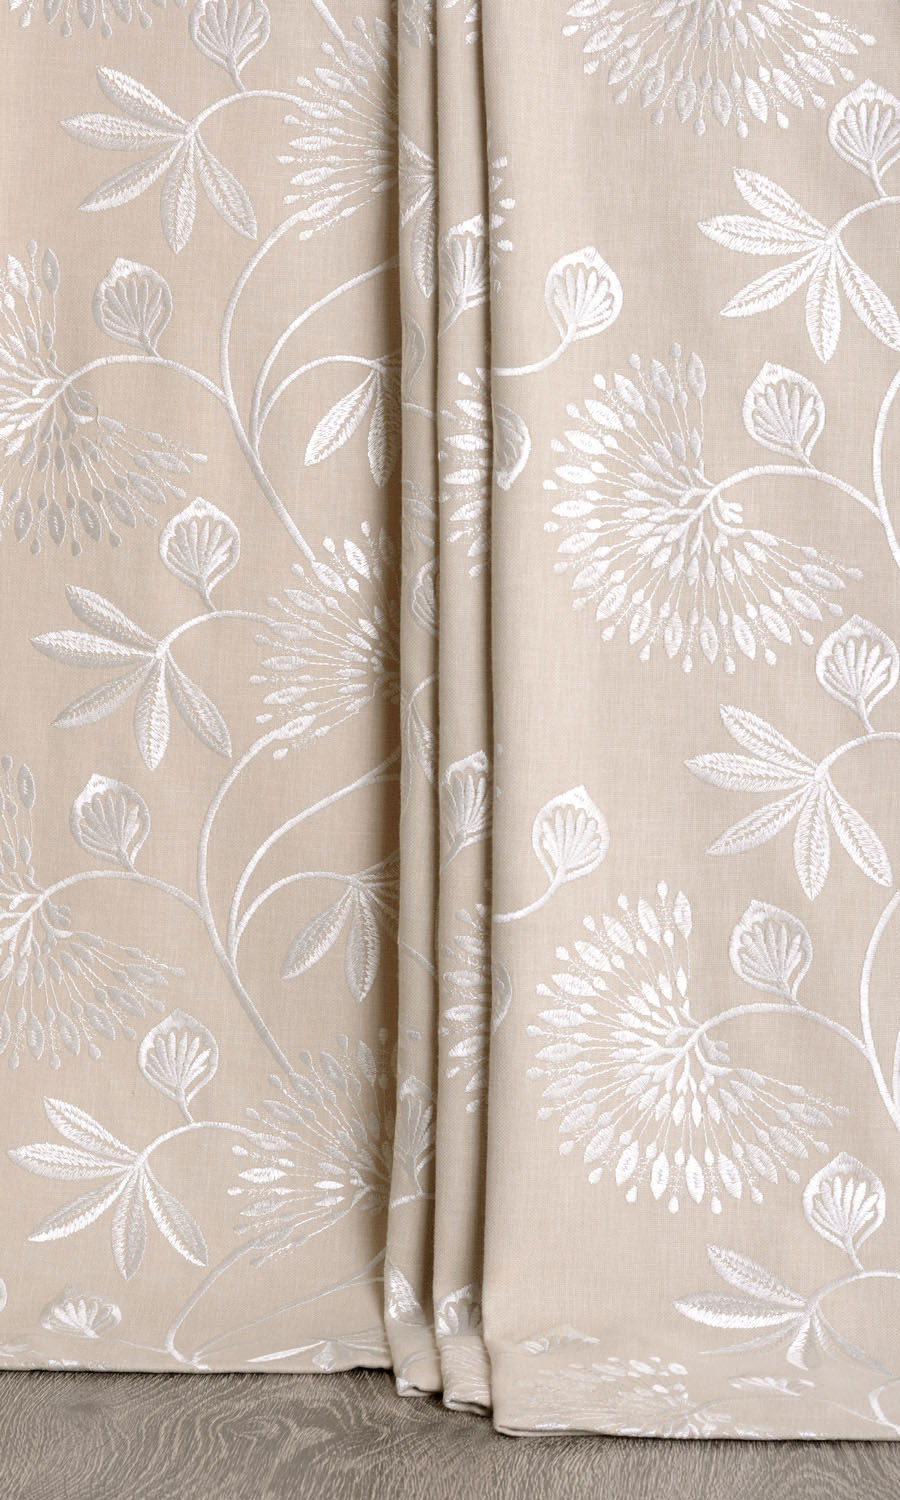 Floral Embroidery Extra Long Curtains